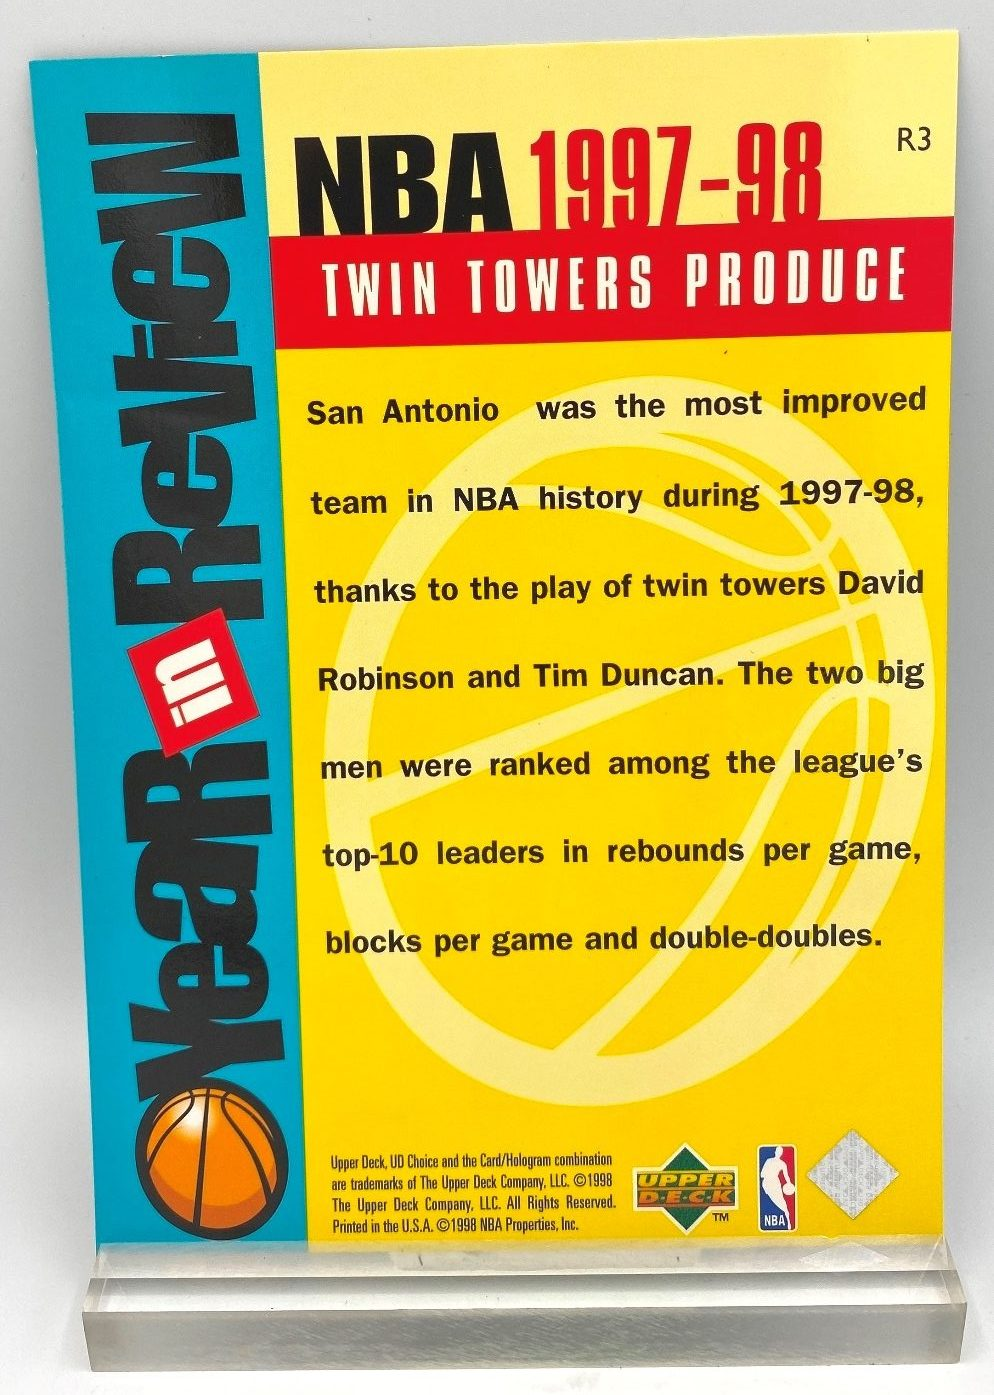 1997-98 Upper Deck NBA Twin Towers Produce (Robinson-Duncan) Year In Review 5x7 (1pc) Card # R3 (4)